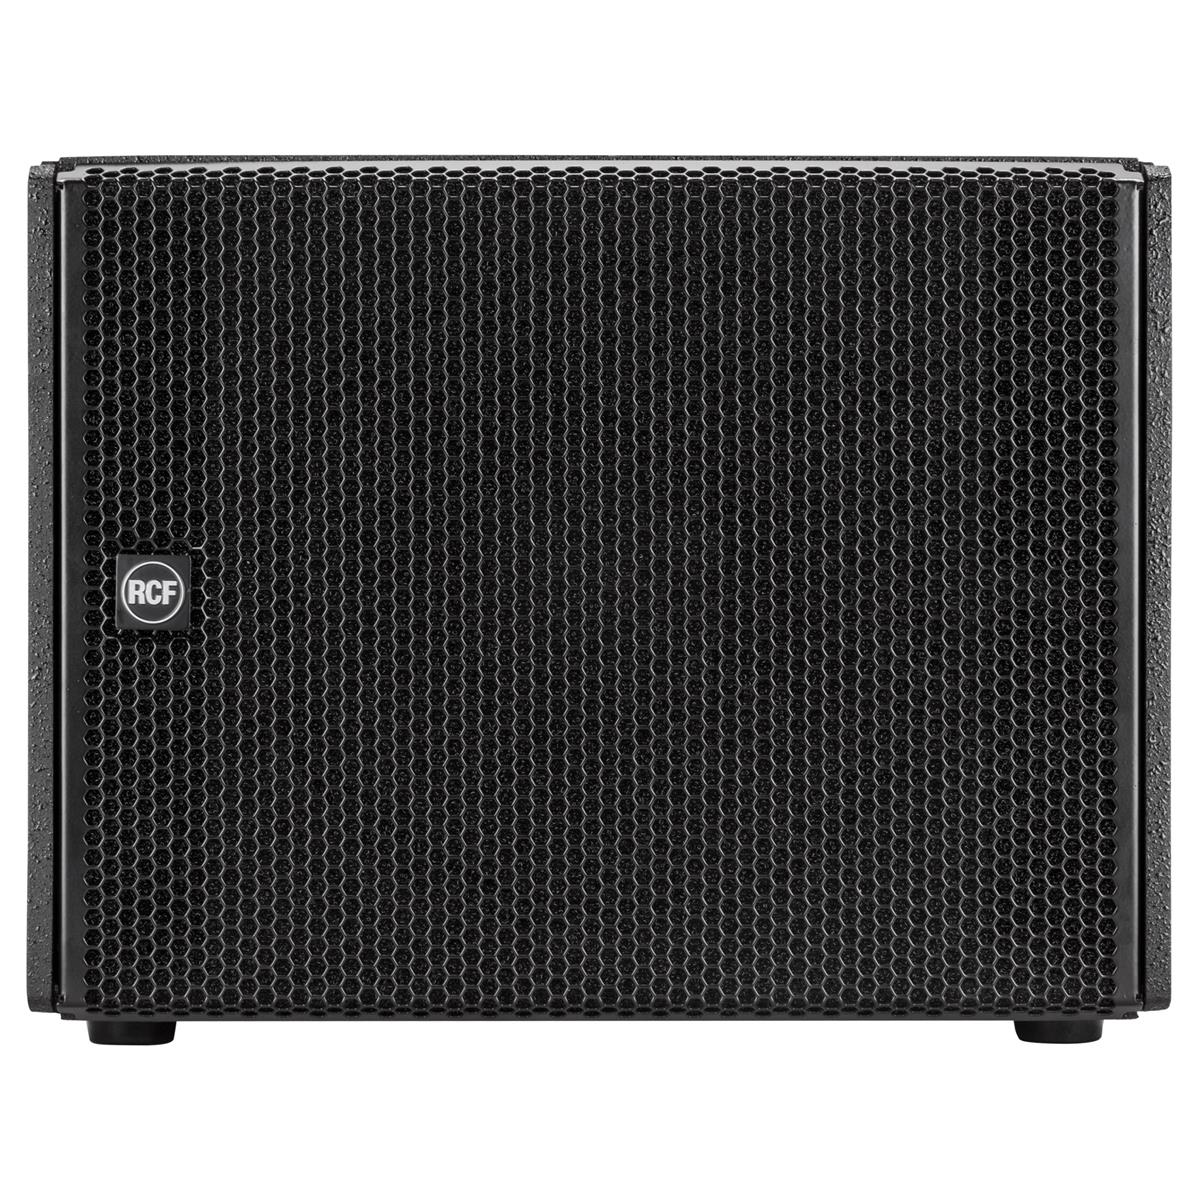 RCF HDL 12-AS Active line array subwoofer for HDL6, 12in, 70